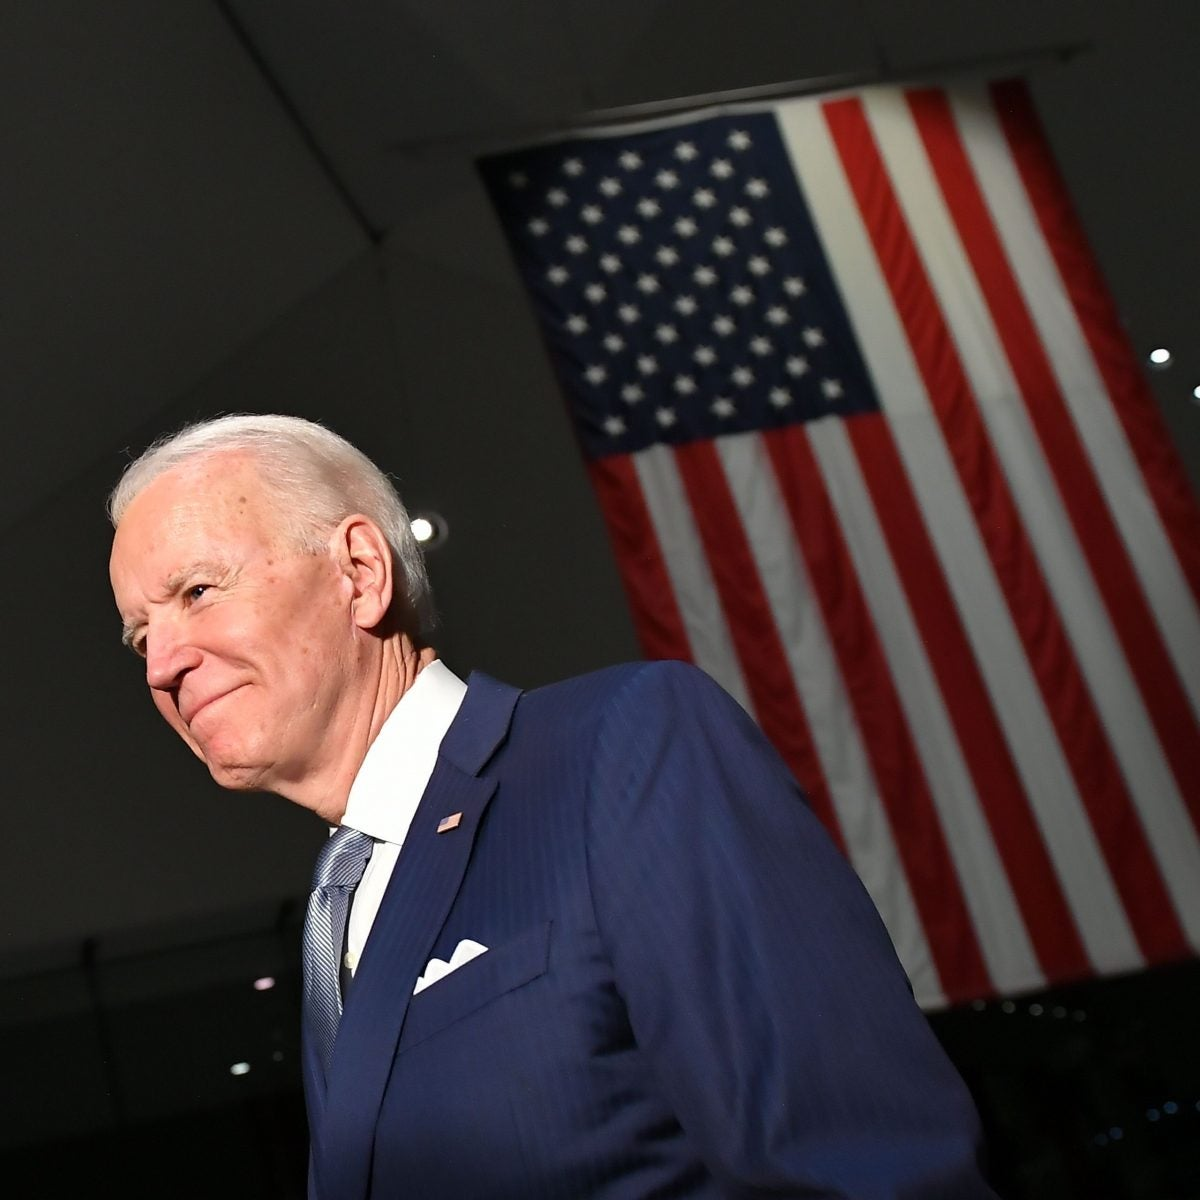 New Florida Poll Shows Biden With 44-Point Lead Over Sanders